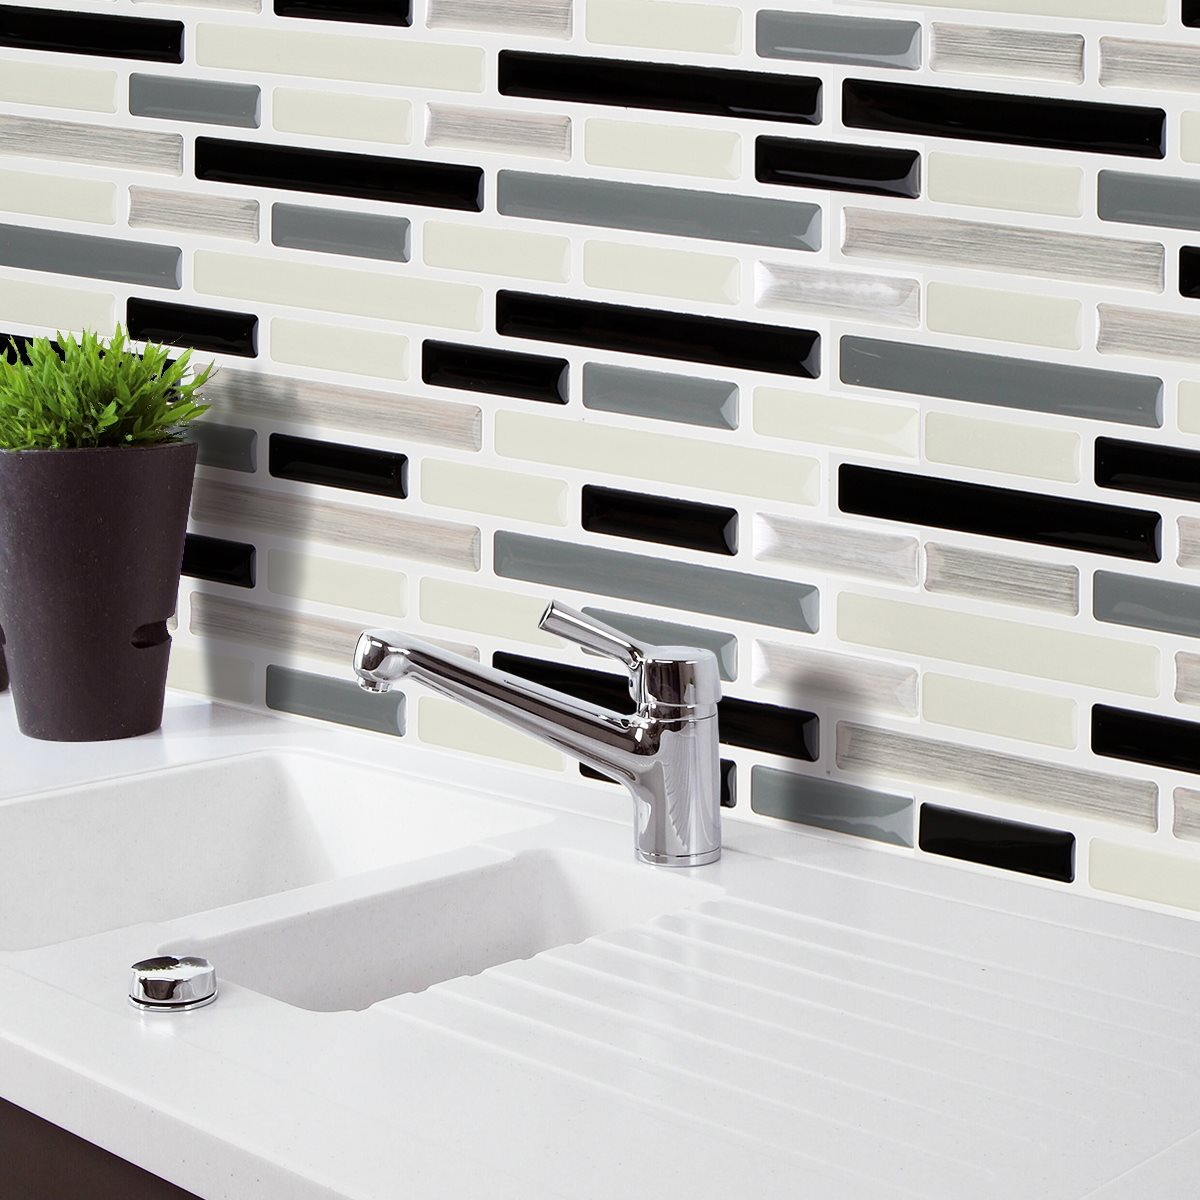 Buy brick bathroom tiles and get free shipping on AliExpress.com